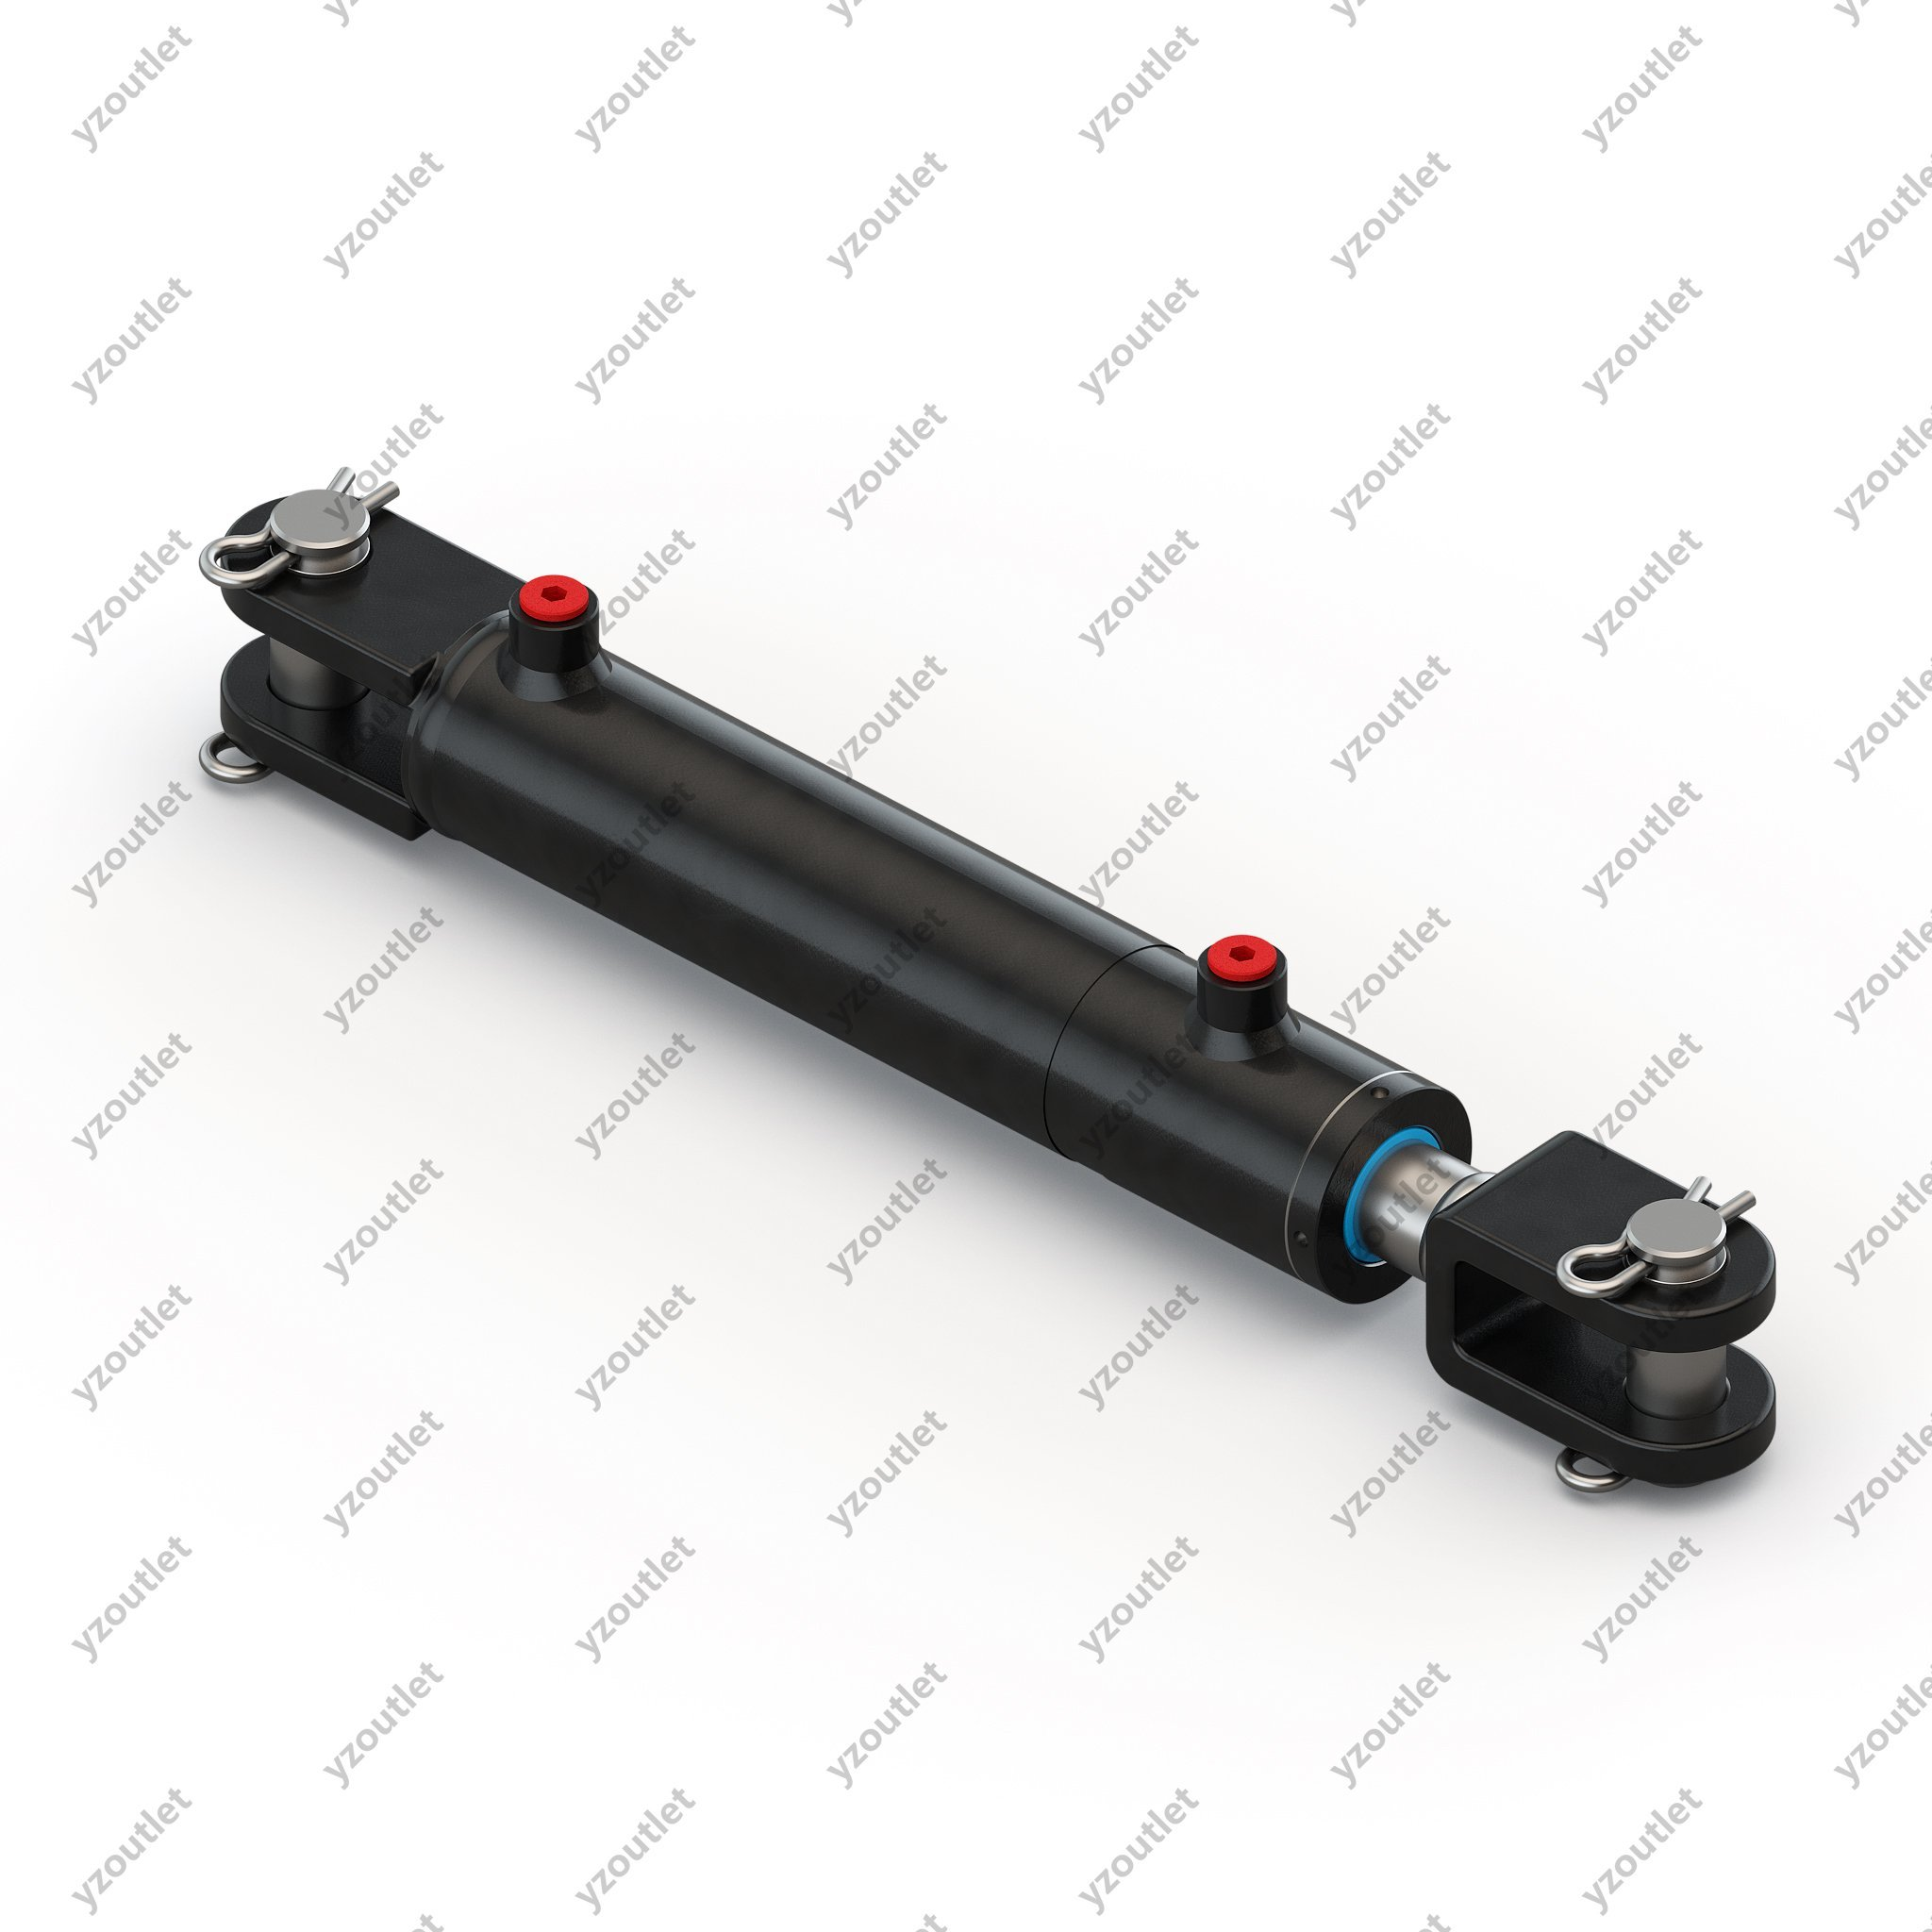 Mighty Double Acting Hydraulic Welded Cylinder Clevis - 2'' Bore x 6'' Stroke